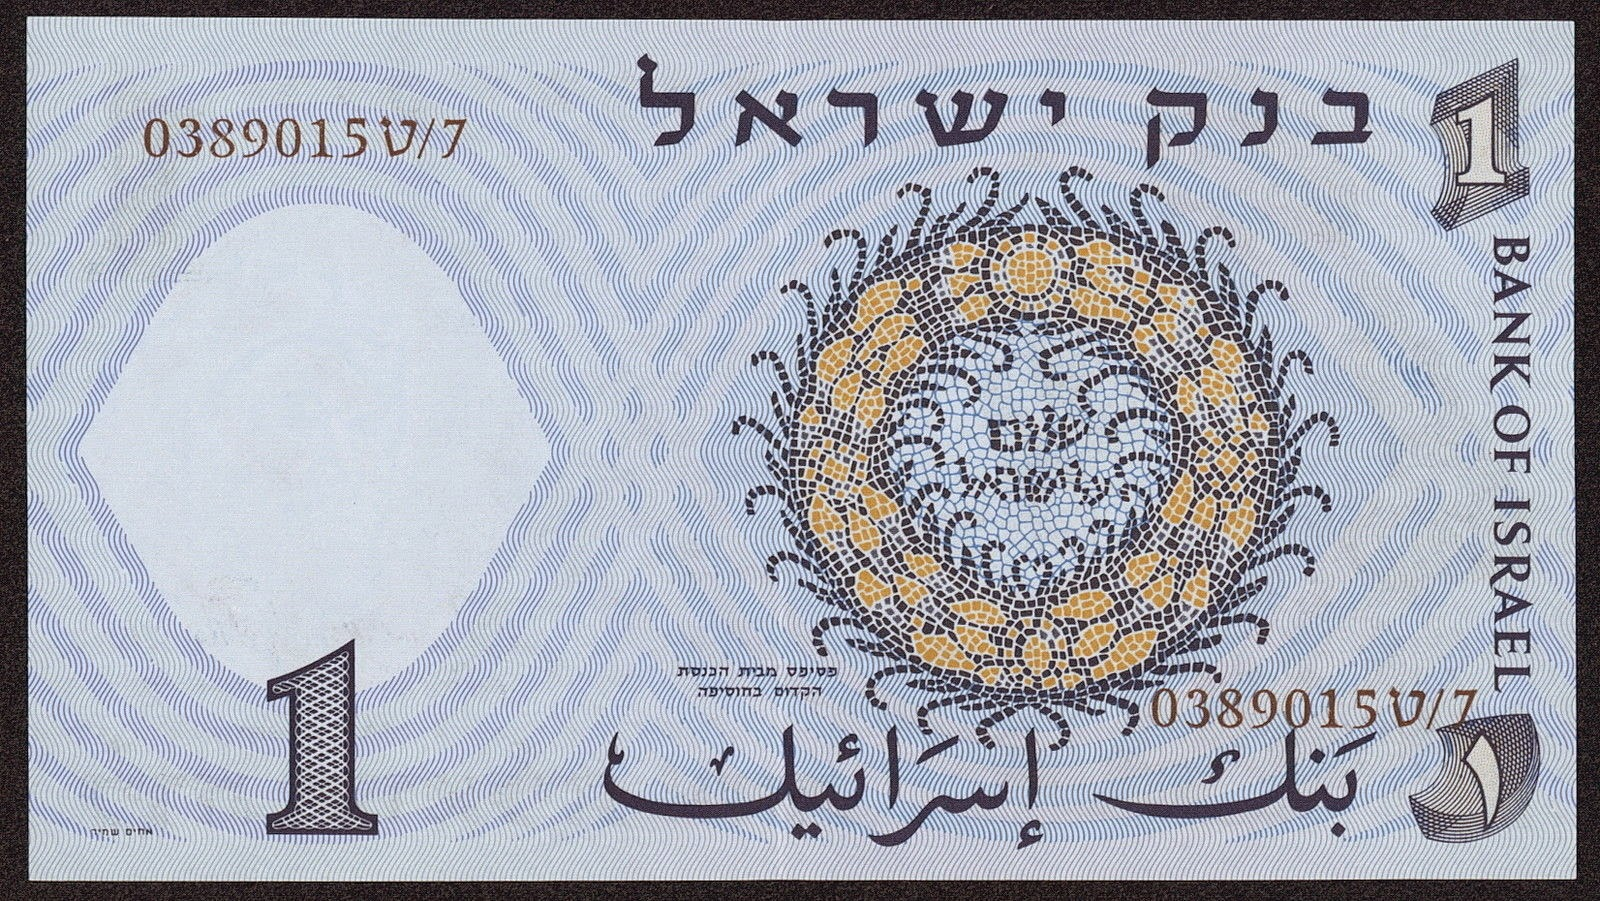 Israeli Currency 1 Lira Bank Note 1958 Mosaic from the floor of an ancient synagogue at lssafiya on Mount Carmel